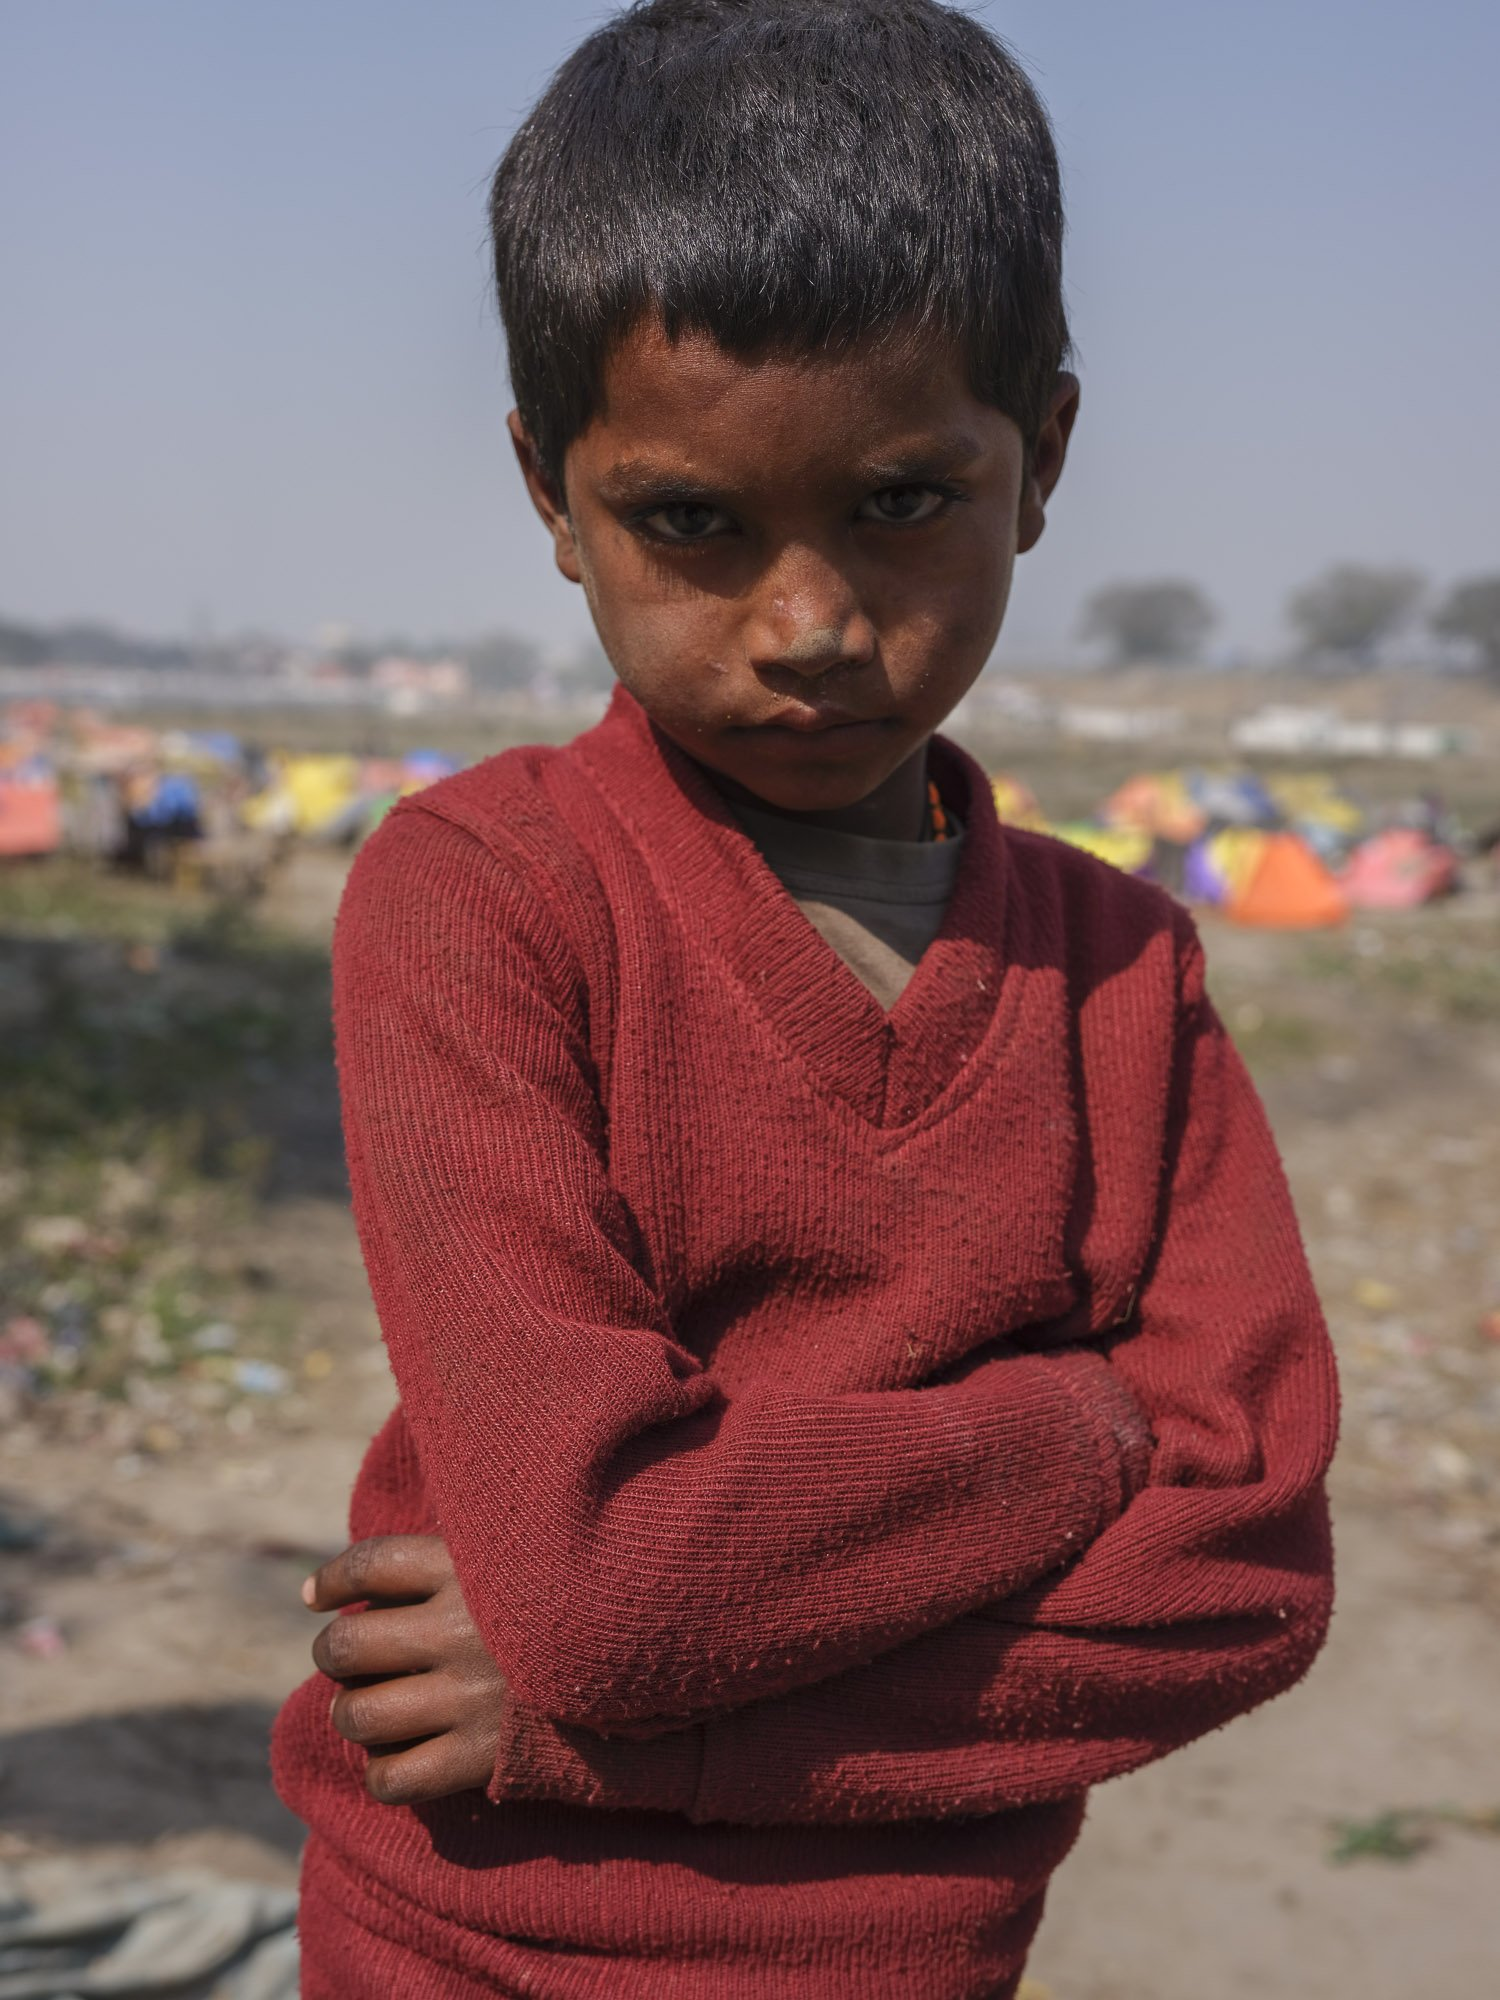 little boy pilgrims Kumbh mela 2019 India Allahabad Prayagraj Ardh hindu religious Festival event rivers photographer jose jeuland photography